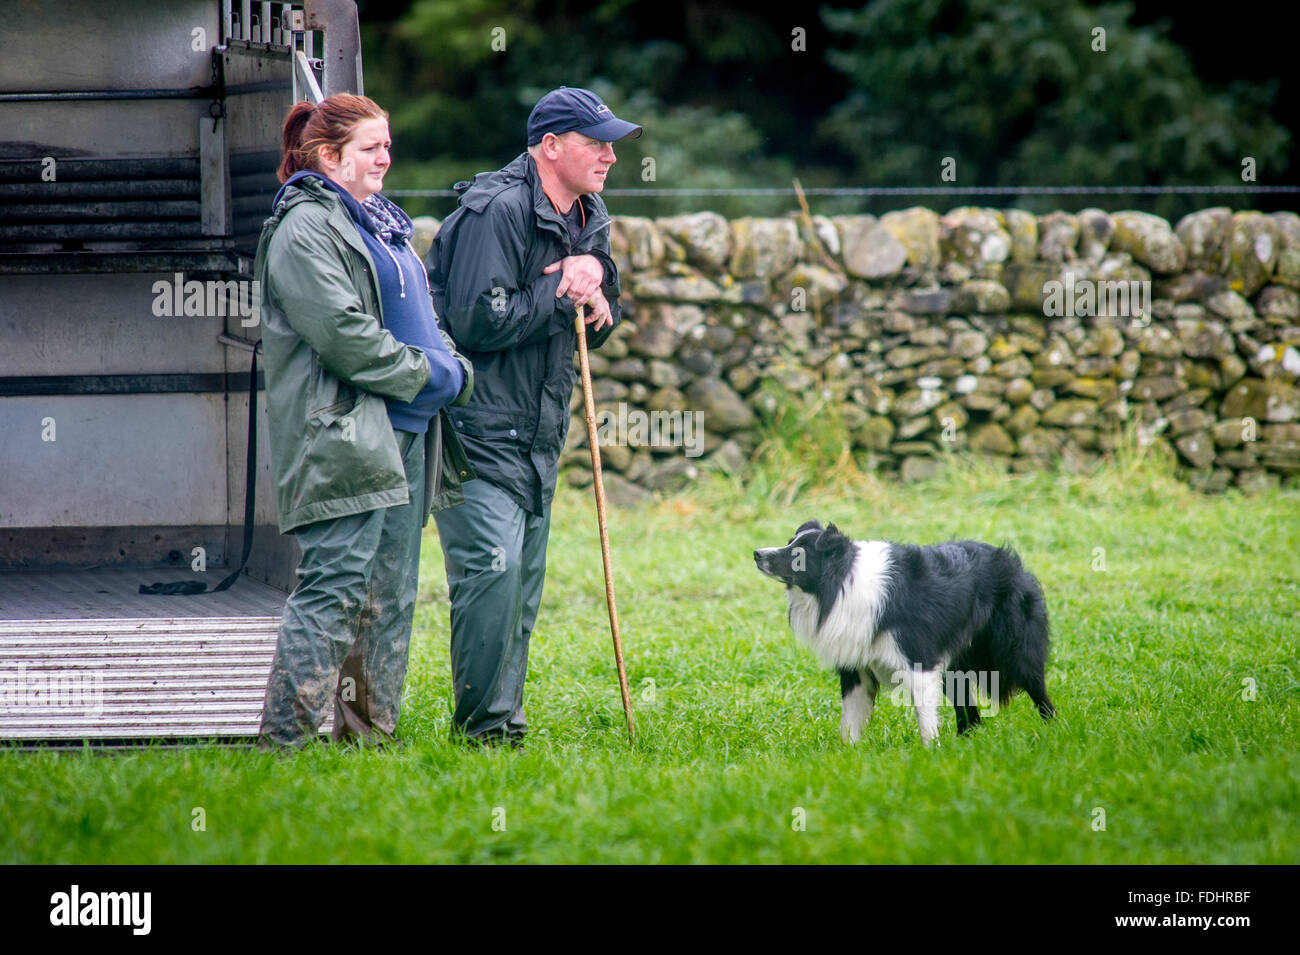 Border collie and its Shepherd at the International Sheep Dog Trials in Moffat, Scotland, UK. - Stock Image